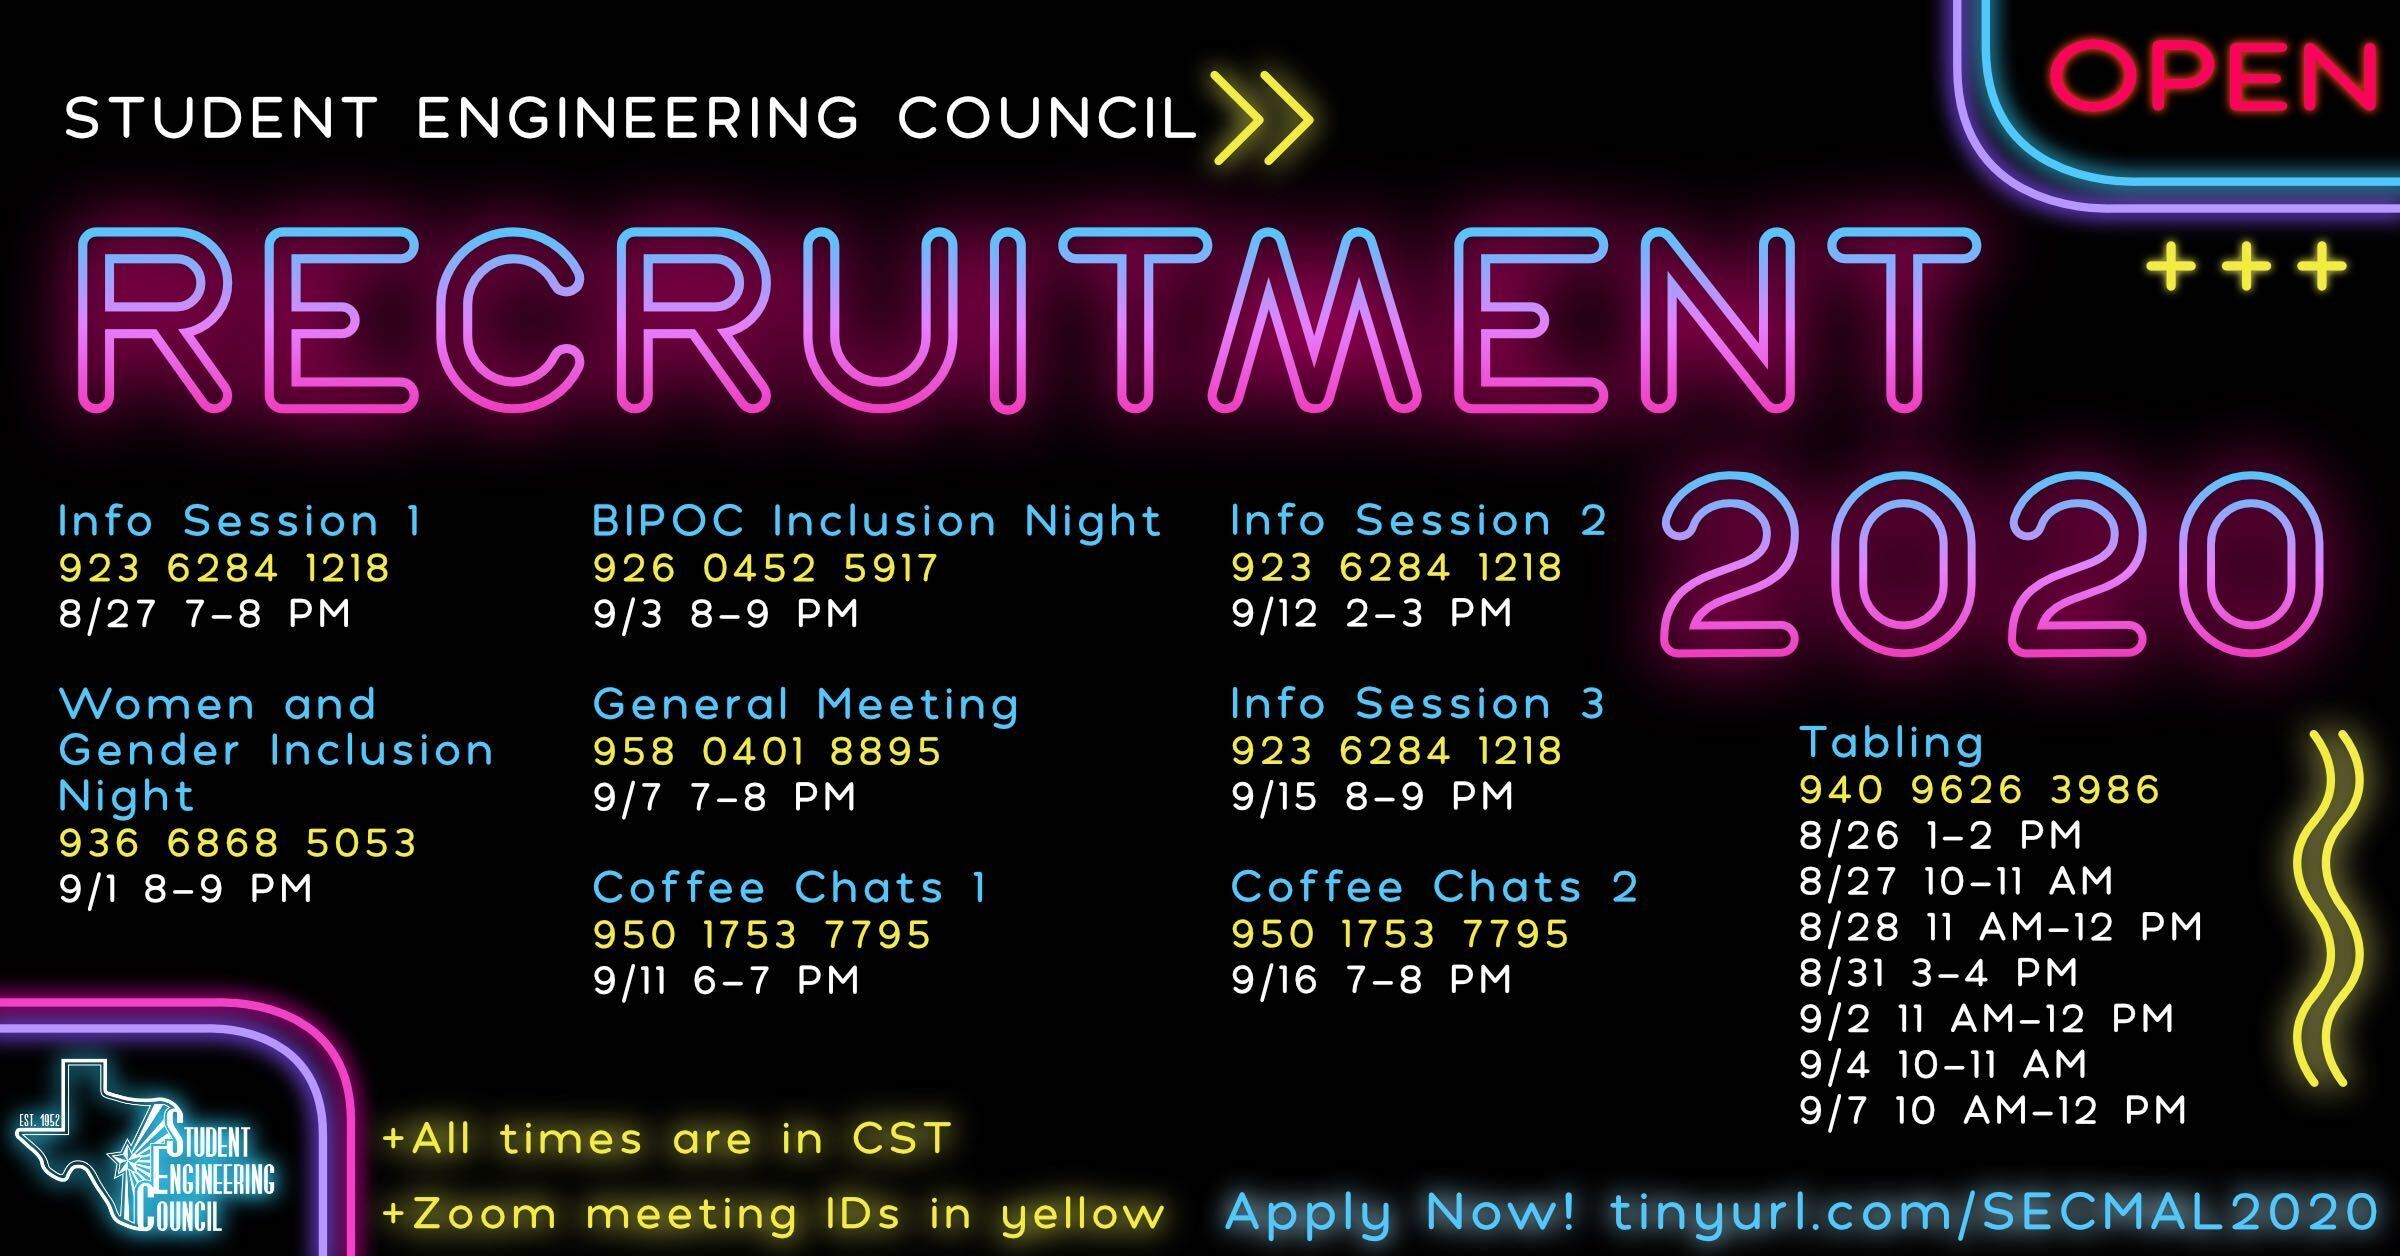 Student Engineering Council  Recruitment 2020  Info Session 1: 8/27 7-8 PM Zoom Meeting ID: 923 6284 1218  Women and Gender Inclusion Night: 9/1 8-9 PM Zoom Meeting ID: 936 6868 5053  BIPOC Inclusion Night: 9/3 8-9 PM Zoom Meeting ID: 926 0452 5917  General Meeting: 9/7 7-8 PM  Coffee Chat 1: 9/11 6-7 PM Zoom Meeting ID: 950 1753 7795  Info Session 2: 9/12 2-3 PM Zoom Meeting ID: 923 6284 1218  Info Session 3: 9/15 8-9 PM Zoom Meeting ID: 923 6284 1218  Coffee Chats 2: 9/16 7-8 PM Zoom Meeting ID: 950 1753 7795  Tabling: 8/26 1-2 PM 8/27 10-11 AM 8/28 11 AM - 12 PM 8/31 3-4 PM 9/2 11 AM - 12 PM 9/4 10-11 AM 9/7 10 AM - 12 PM Zoom Meeting ID: 940 9626 3986